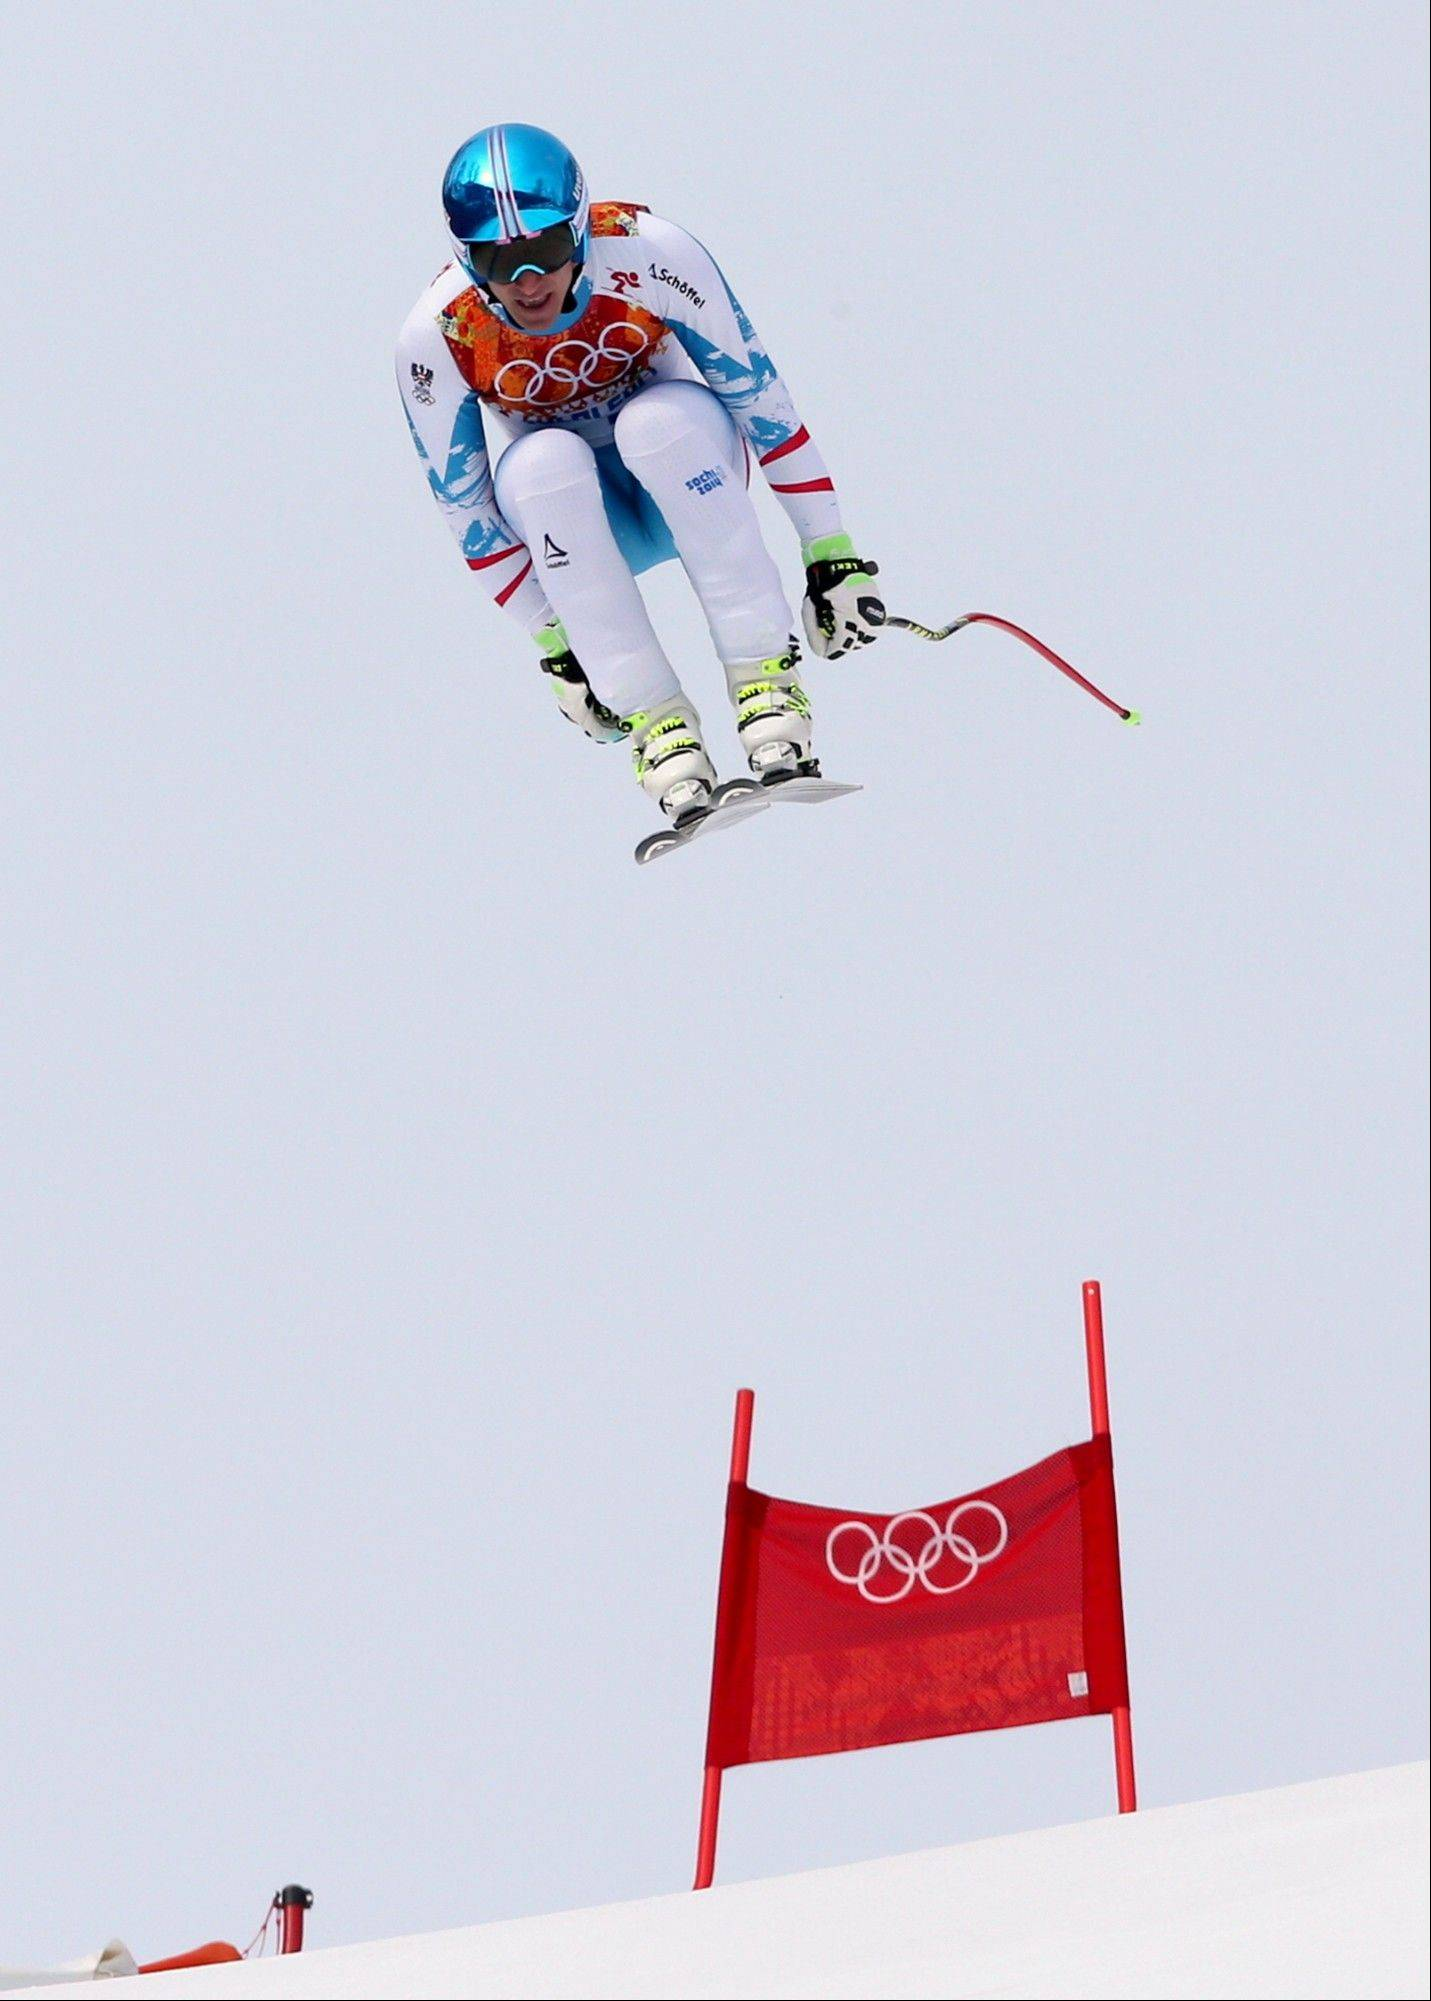 Austria's gold medalist Matthias Mayer jumps Sunday during the men's downhill at the Sochi 2014 Winter Olympics in Krasnaya Polyana, Russia.